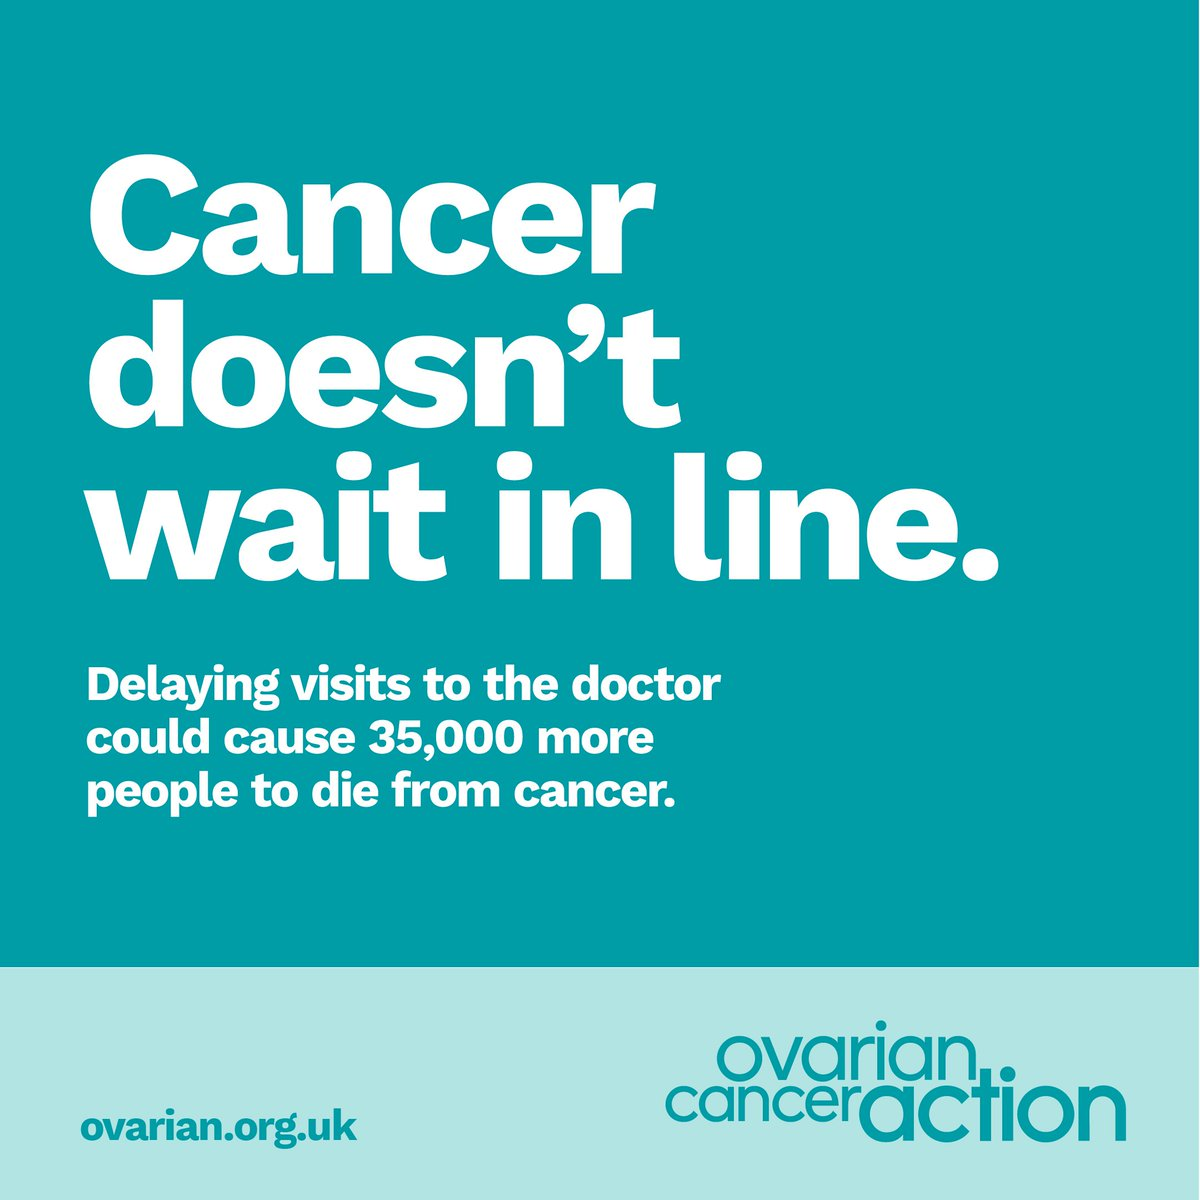 Ovarian Cancer Action On Twitter Stomach Pain Bloating Loss Of Appetite And Frequent Weeing Are All Symptoms Of Ovarian Cancer If You Re Experiencing Anything Unusual Your Doctor Wants To See You Find